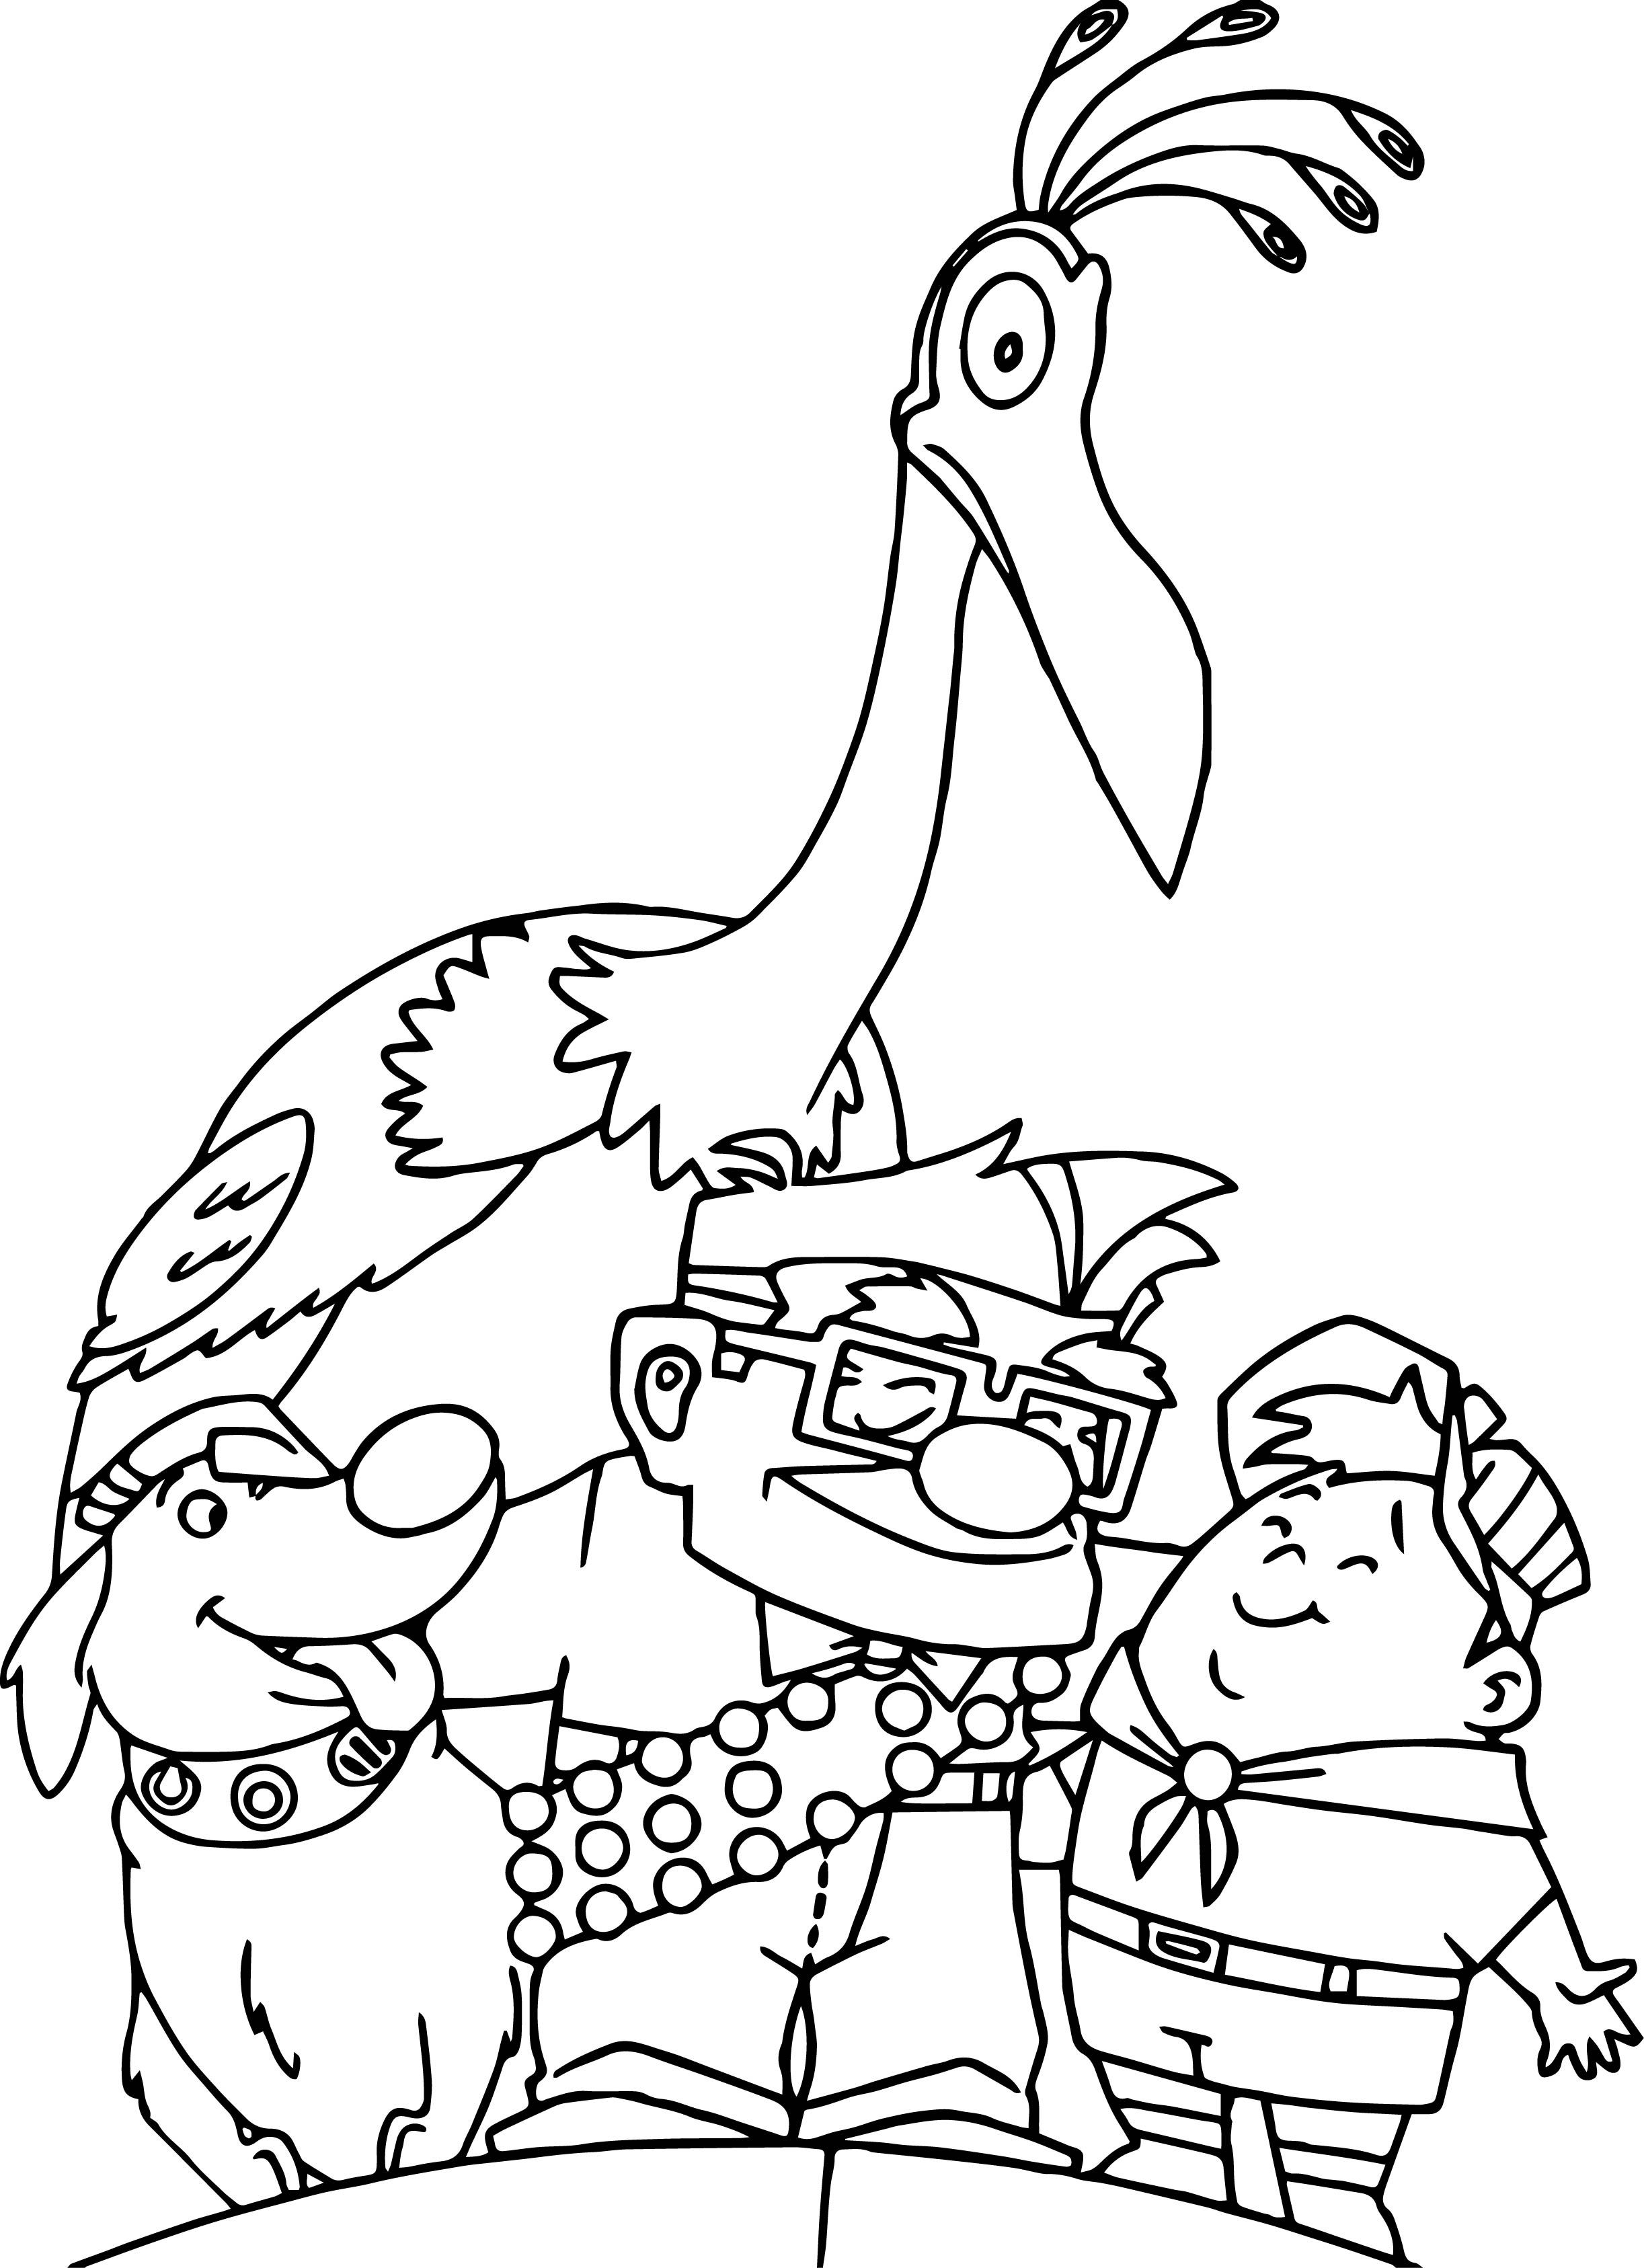 Disney Pixar Up Coloring Pages Disney coloring pages